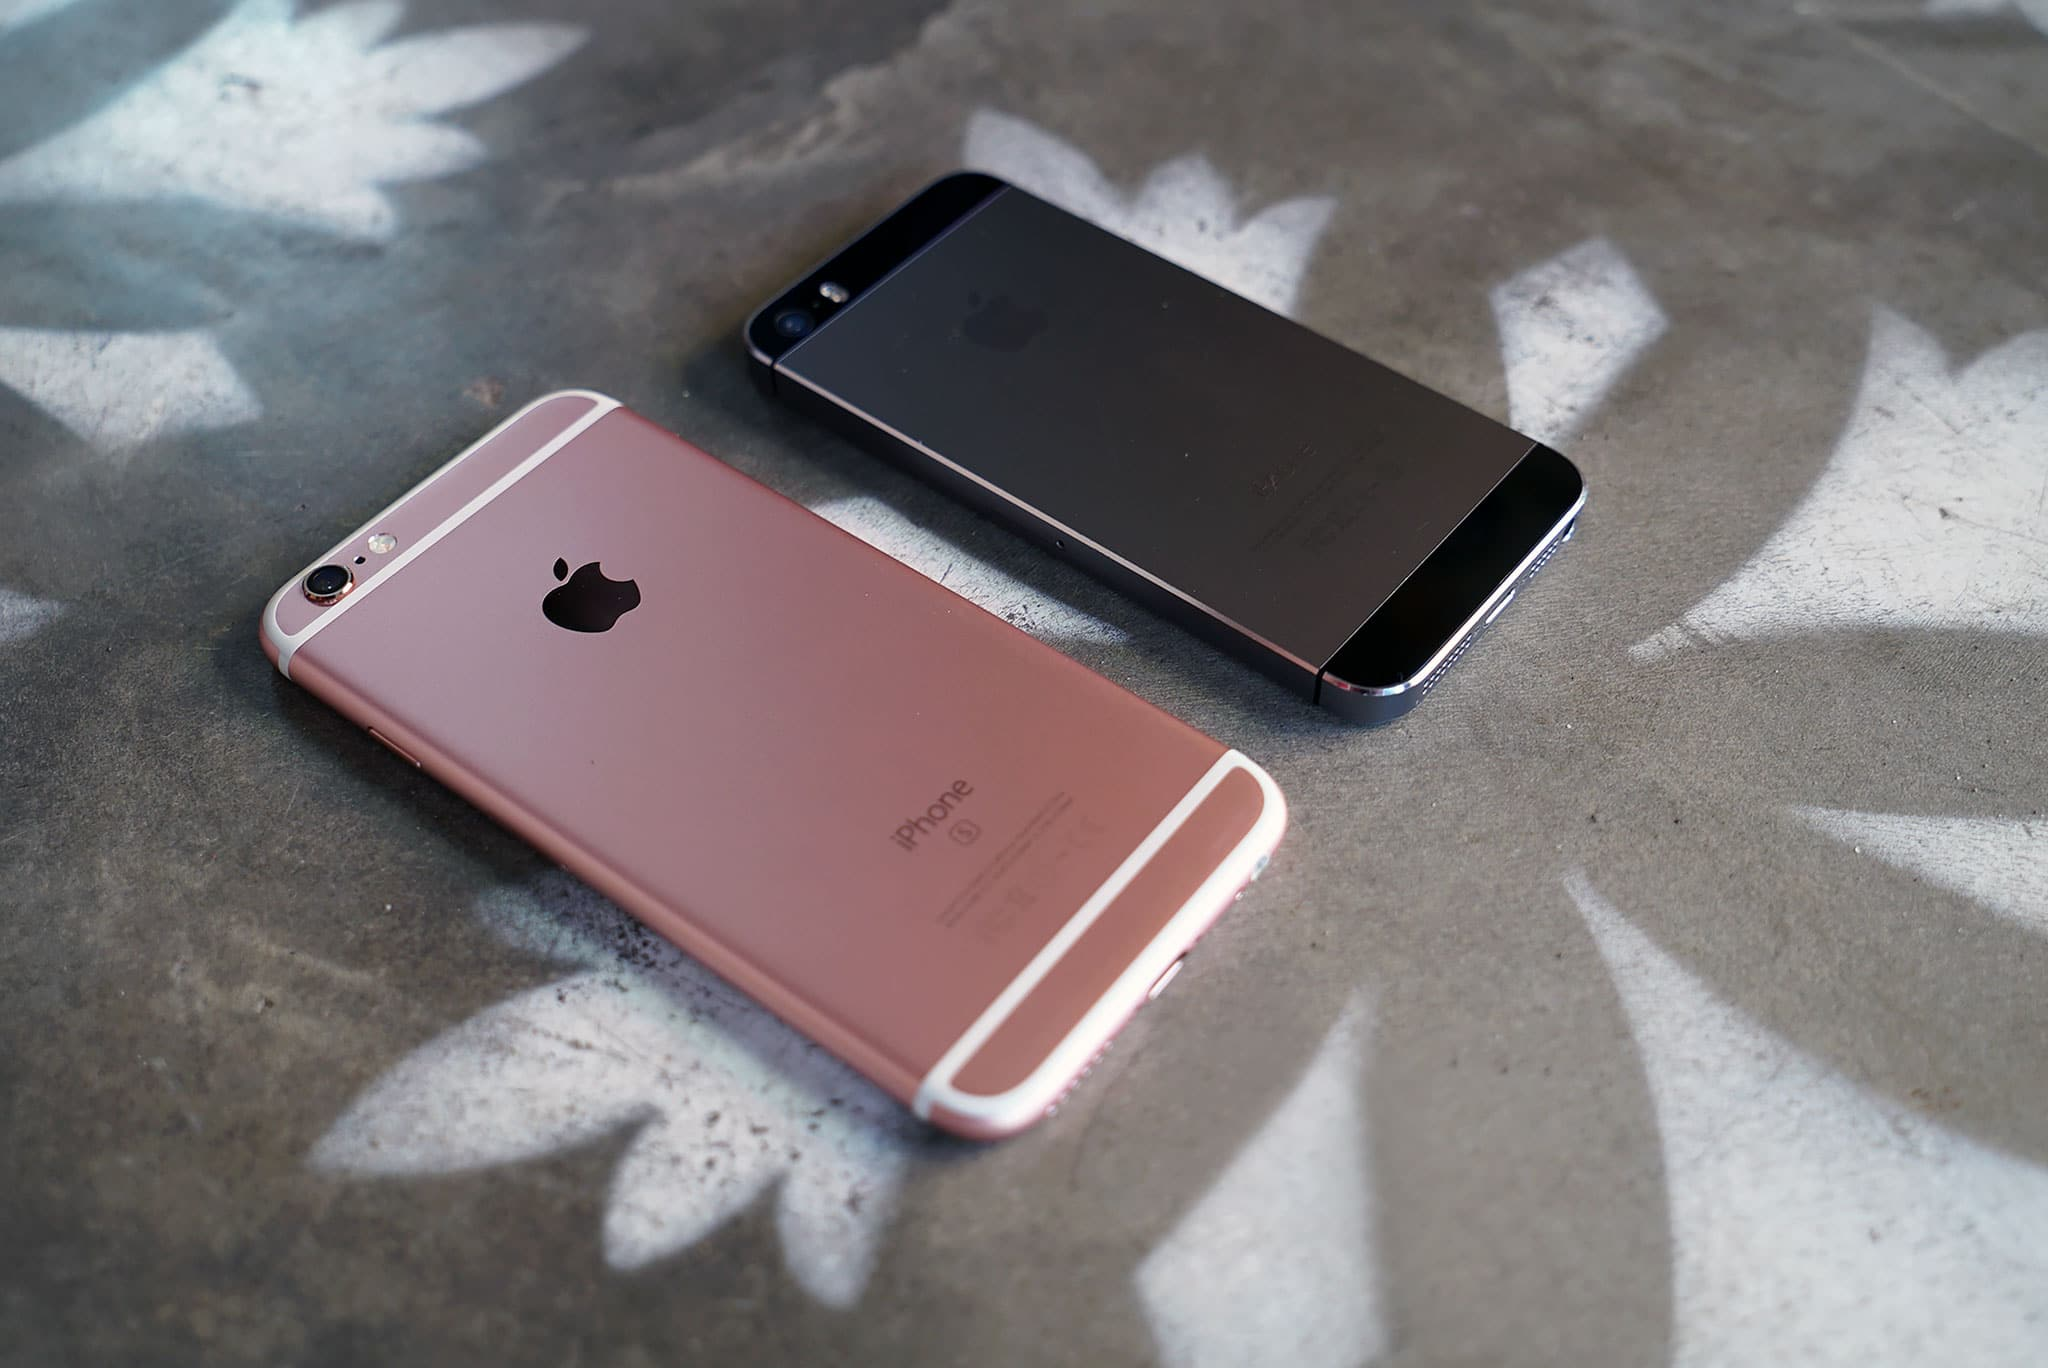 The iPhone 5SE will sport the same form factor as the iPhone 5S not the newer iPhone 6S.